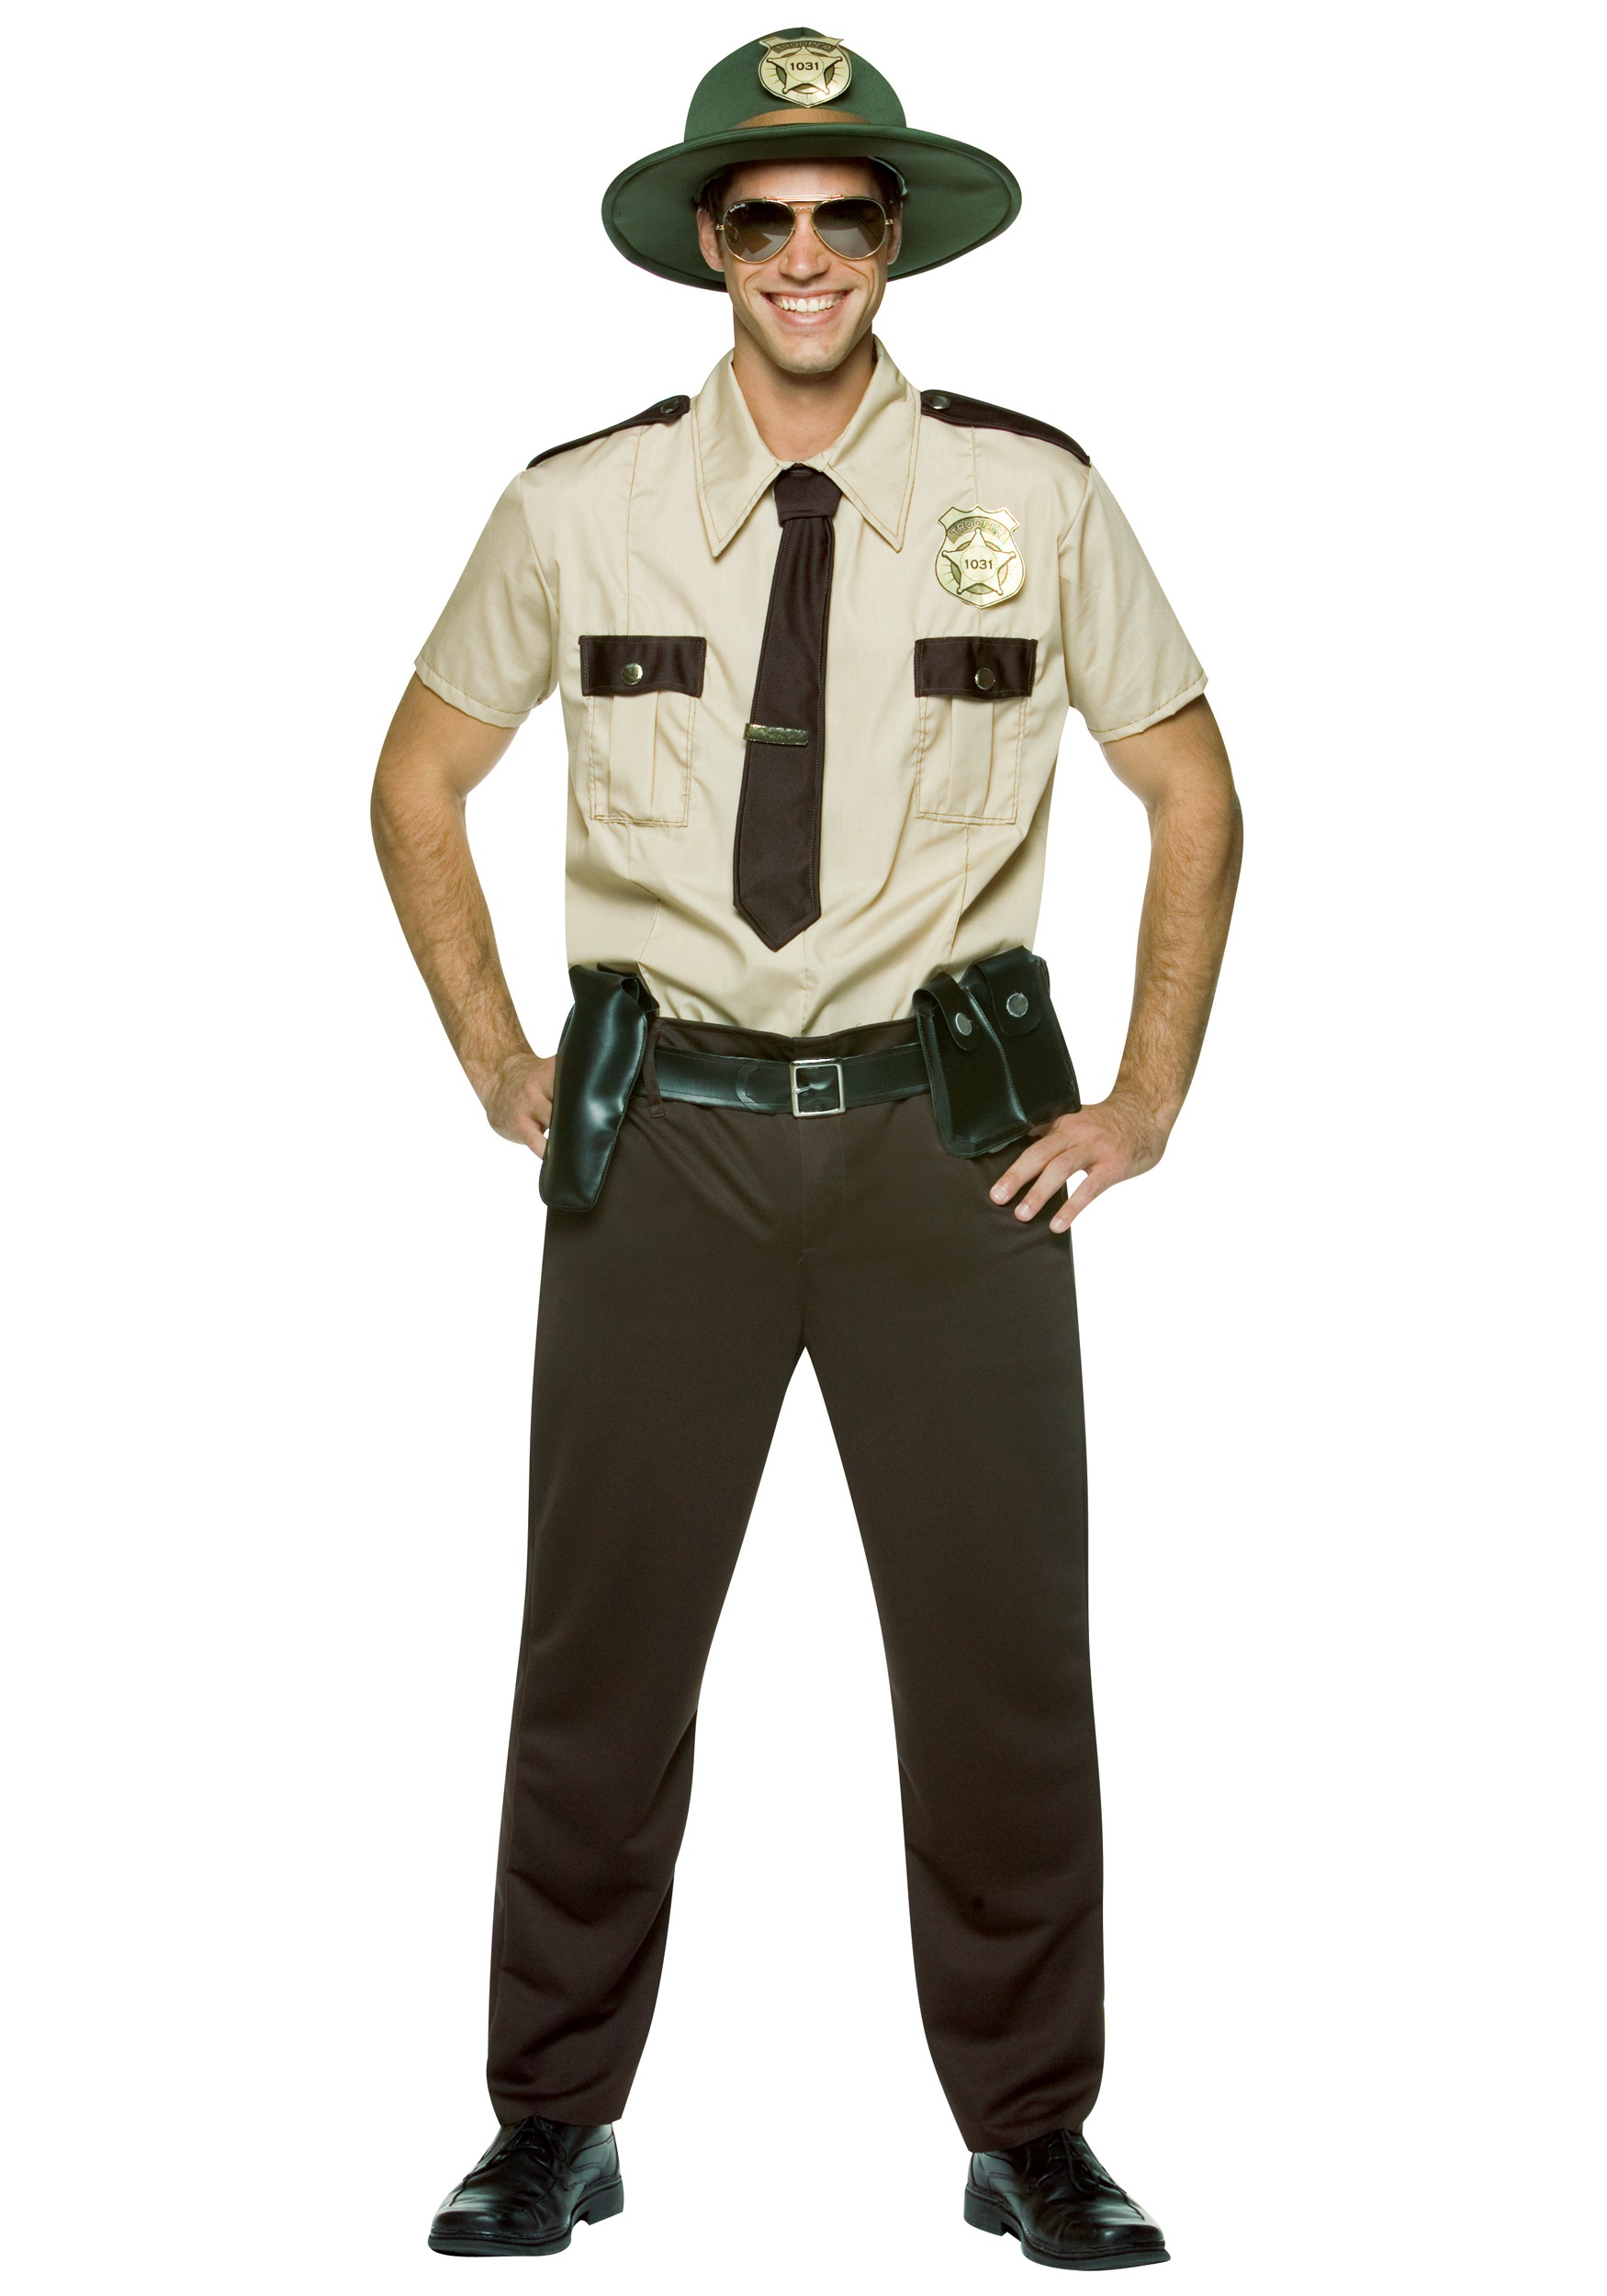 Reno 911 Halloween Costume.Reno 911 Cop Costume Even The City Of Reno Doesnu0027t Want To See